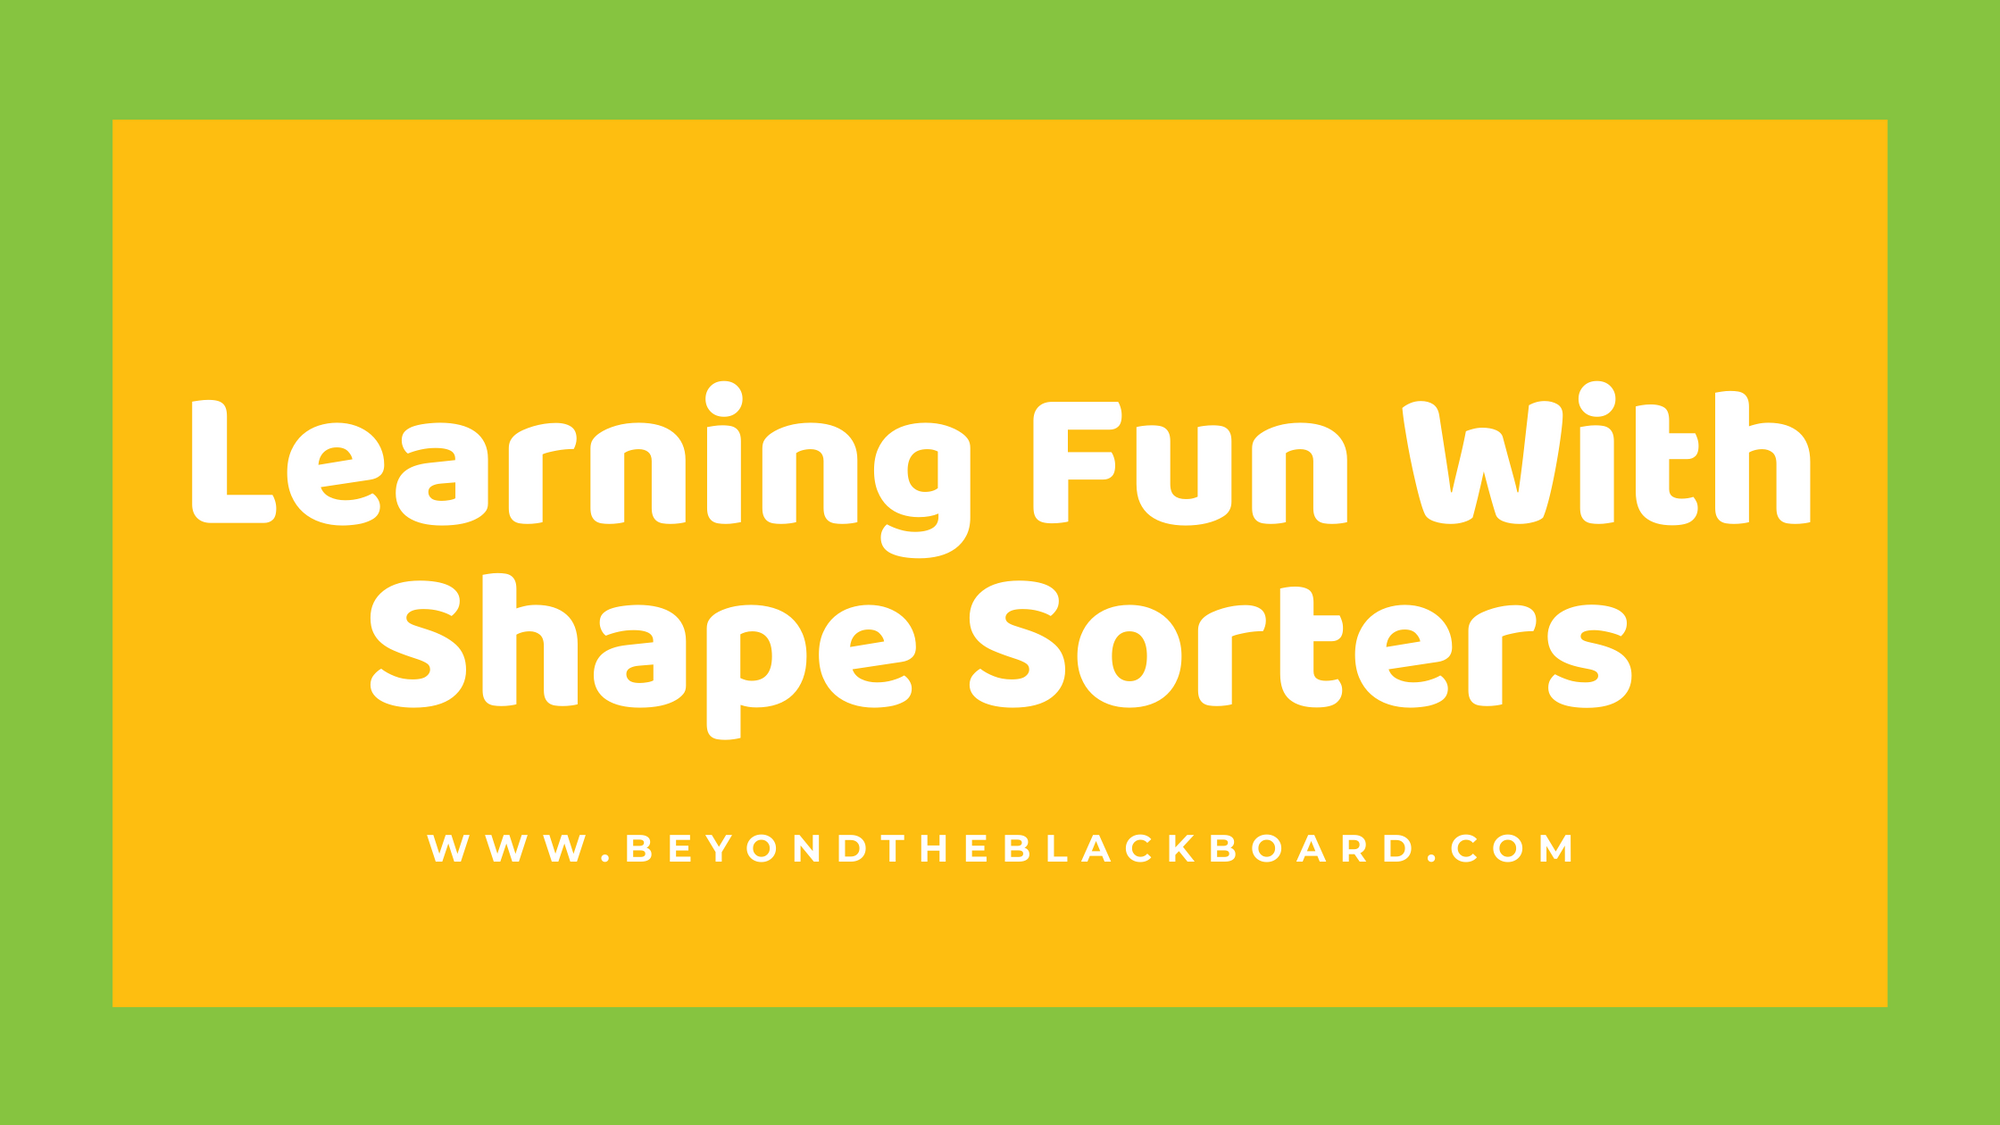 Learning Fun With Shape Sorters; www.beyondtheblackboard.com